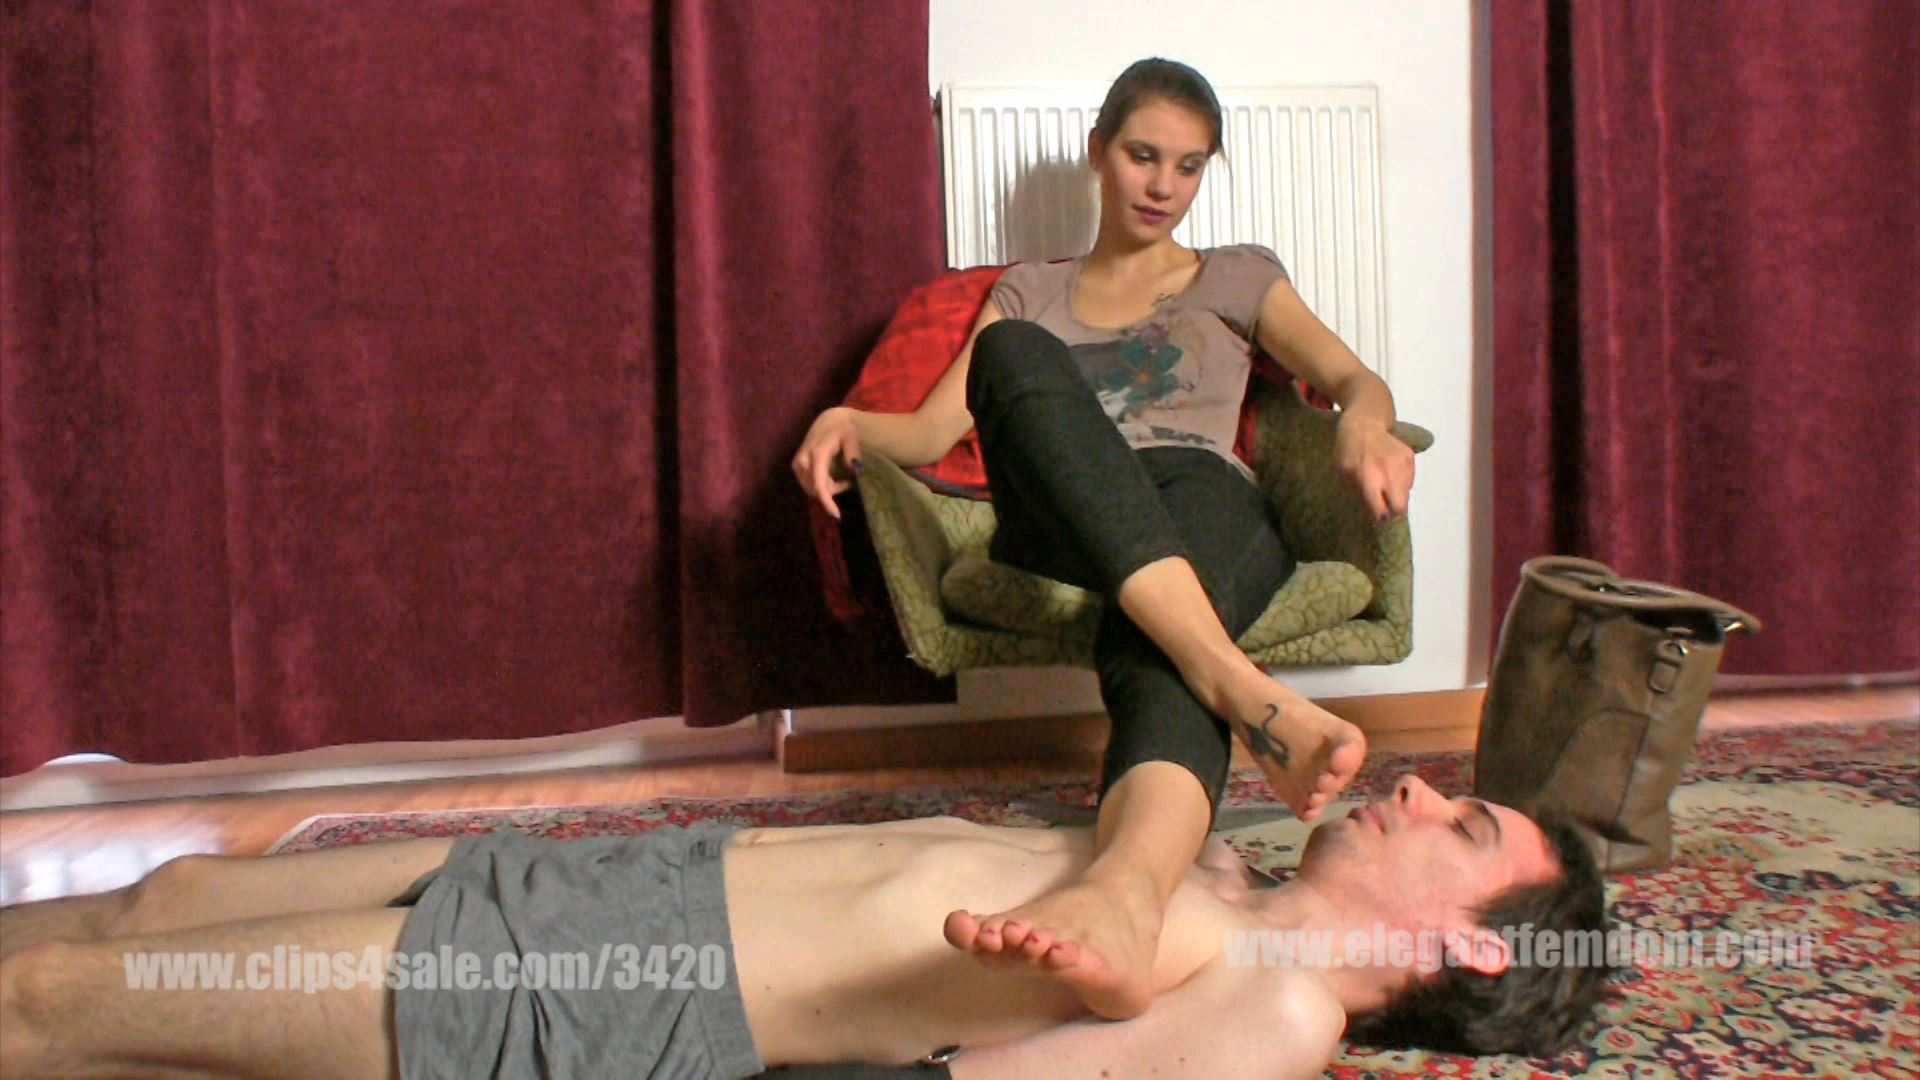 Lady Lucy orders the slave to take her smelly warm socks off - ELEGANTFEMDOM - FULL HD/1080p/MP4